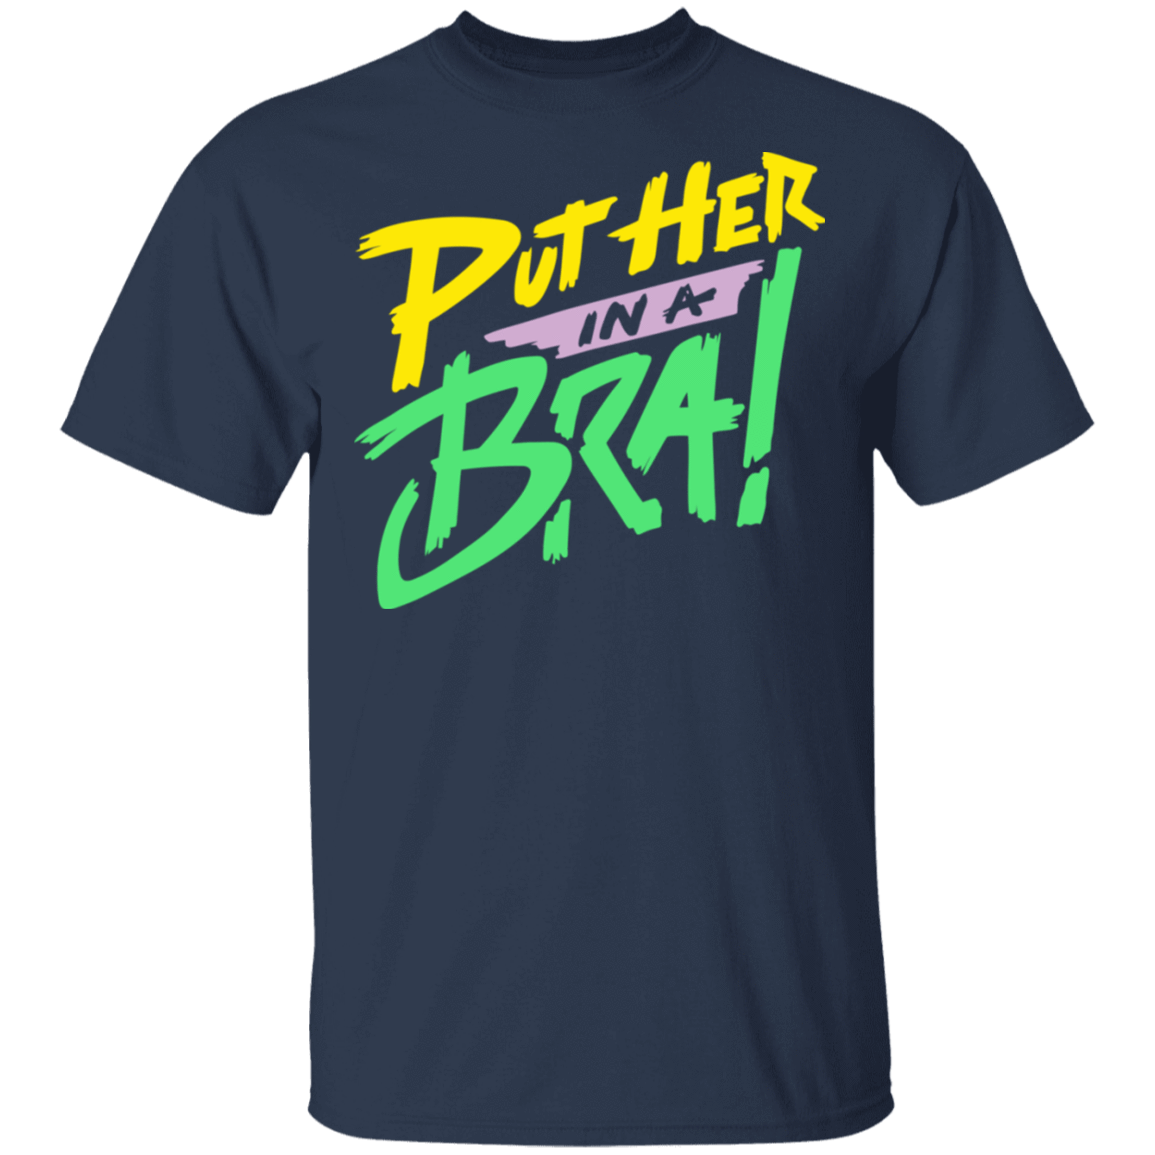 Put Her In A Bra! T-Shirts, Hoodies, Tank 22-111-79540867-250 - Tee Ript